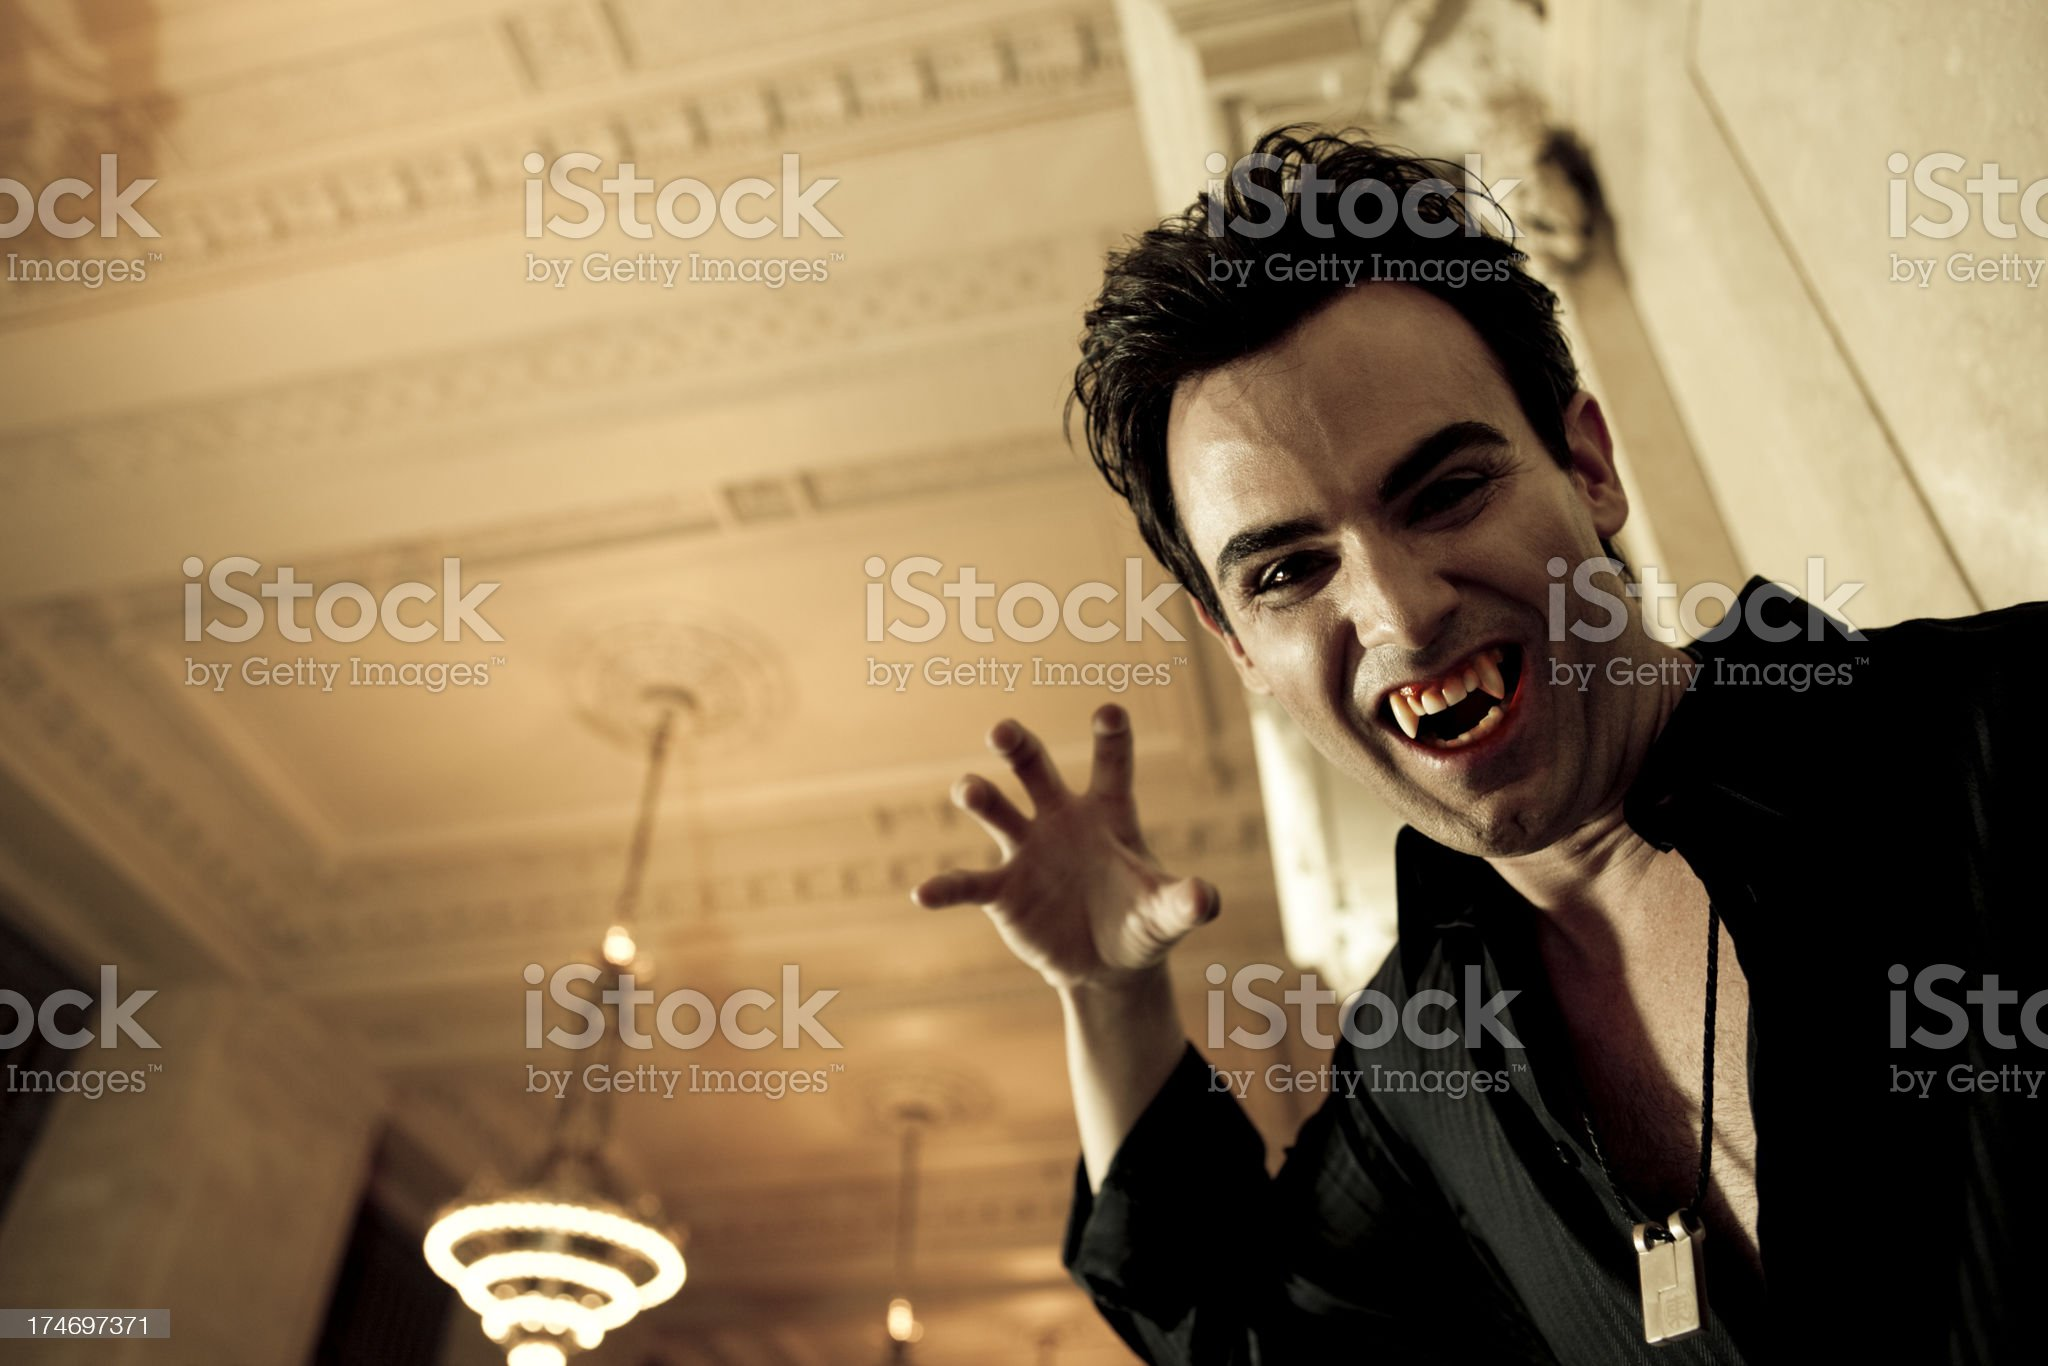 your next royalty-free stock photo